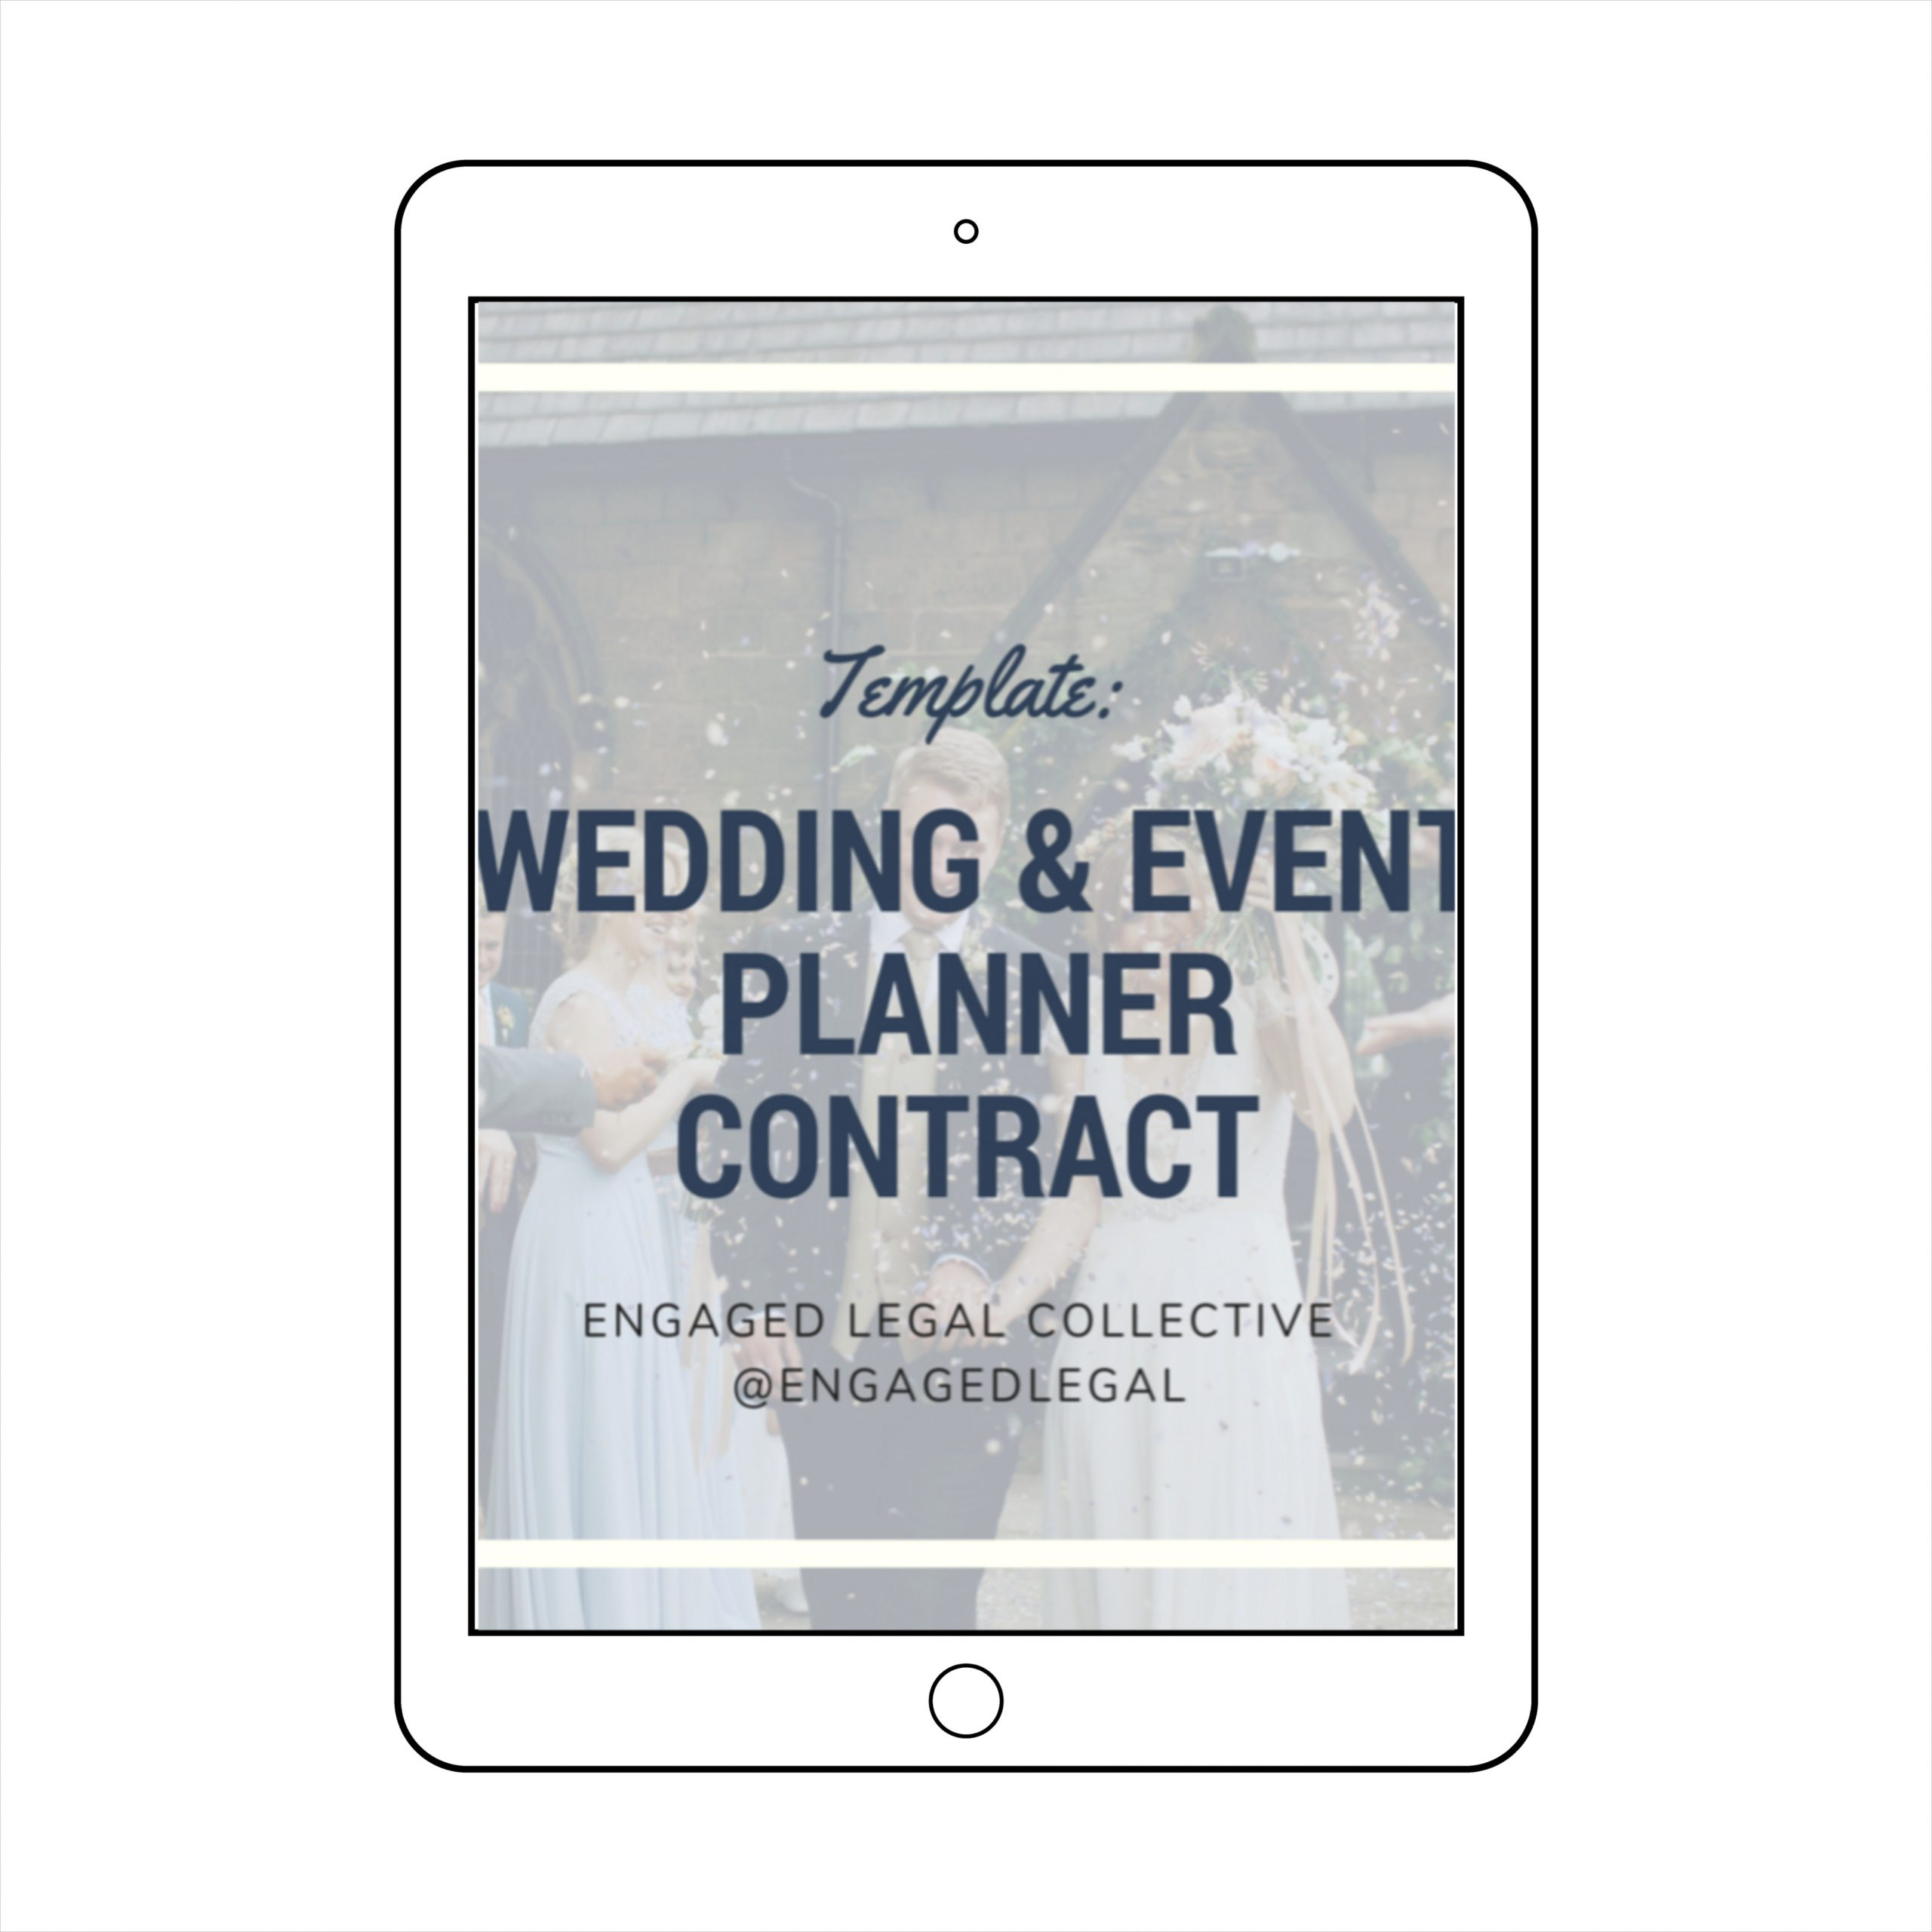 wedding event planner contract